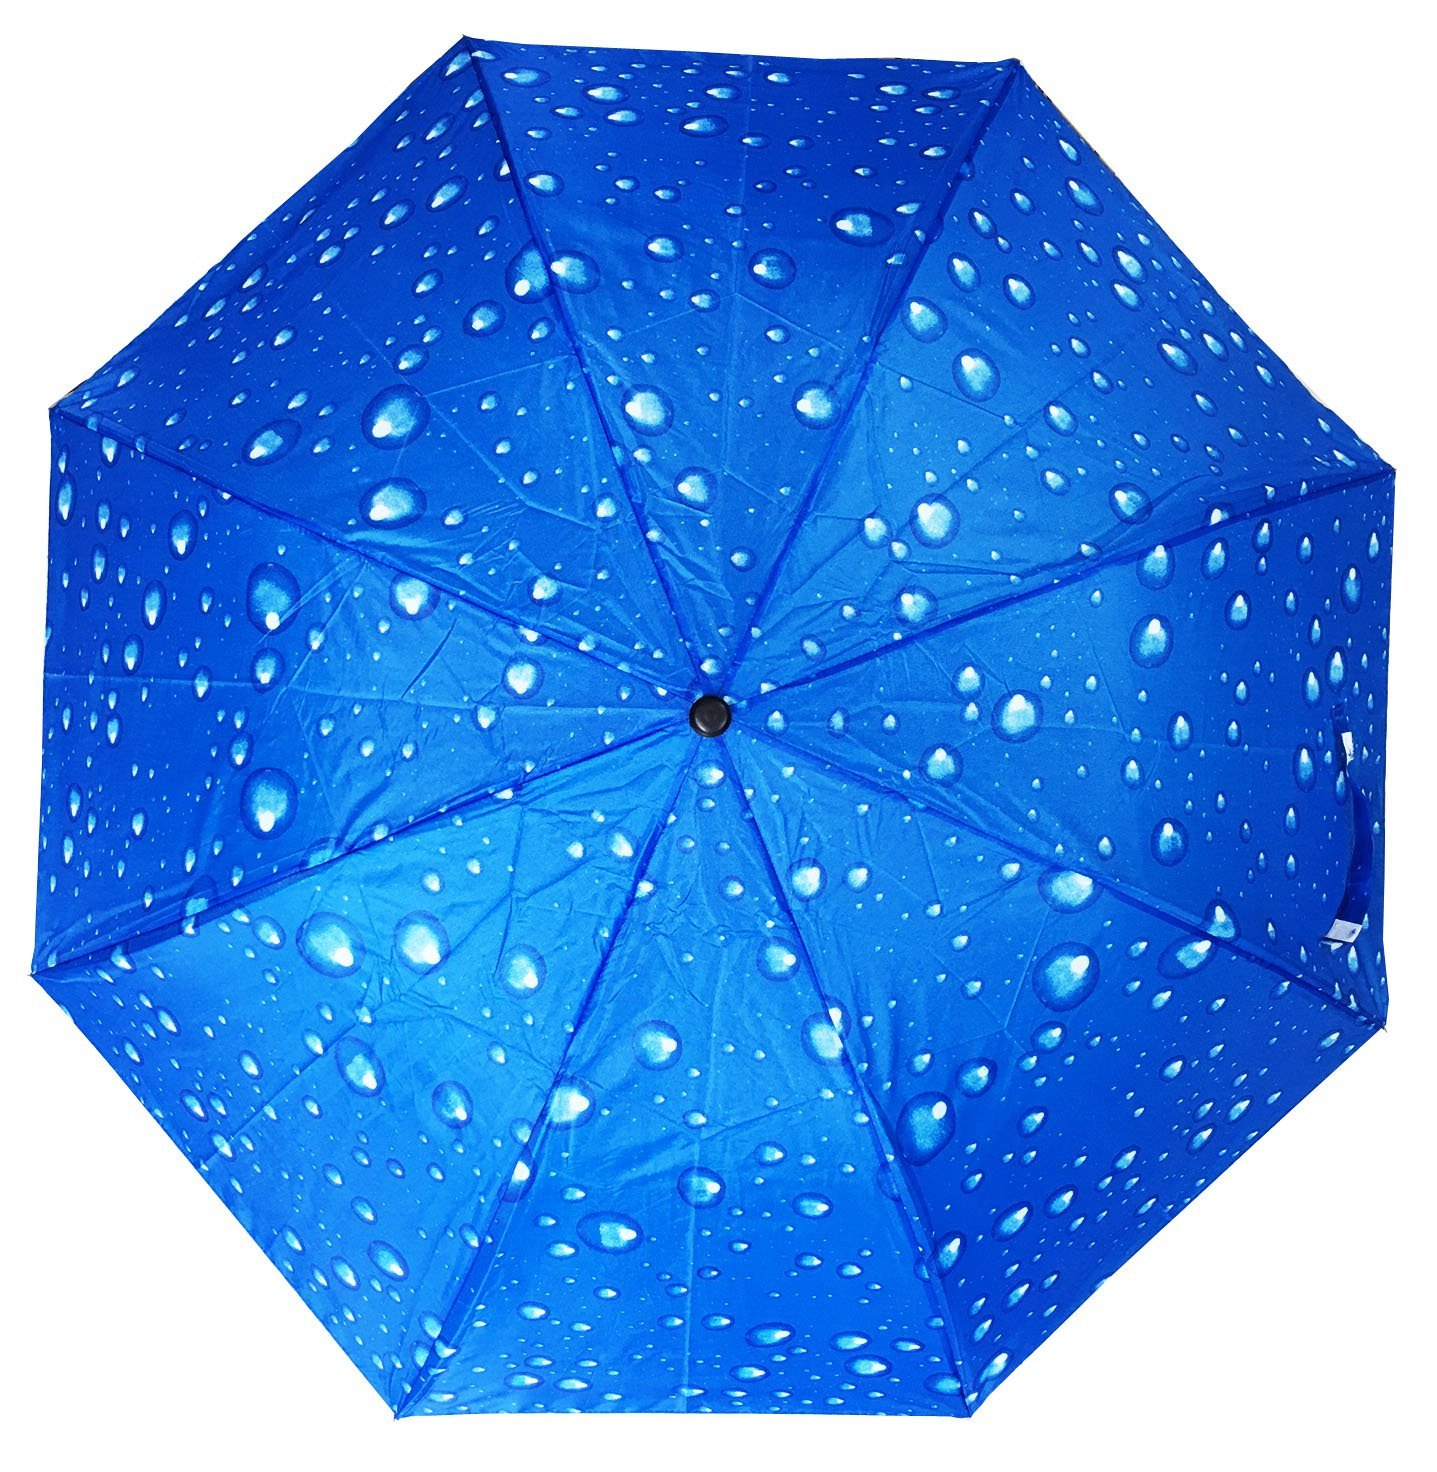 Automatic Folding compact umbrella (blue) by Conch umbrellas (Image #2)